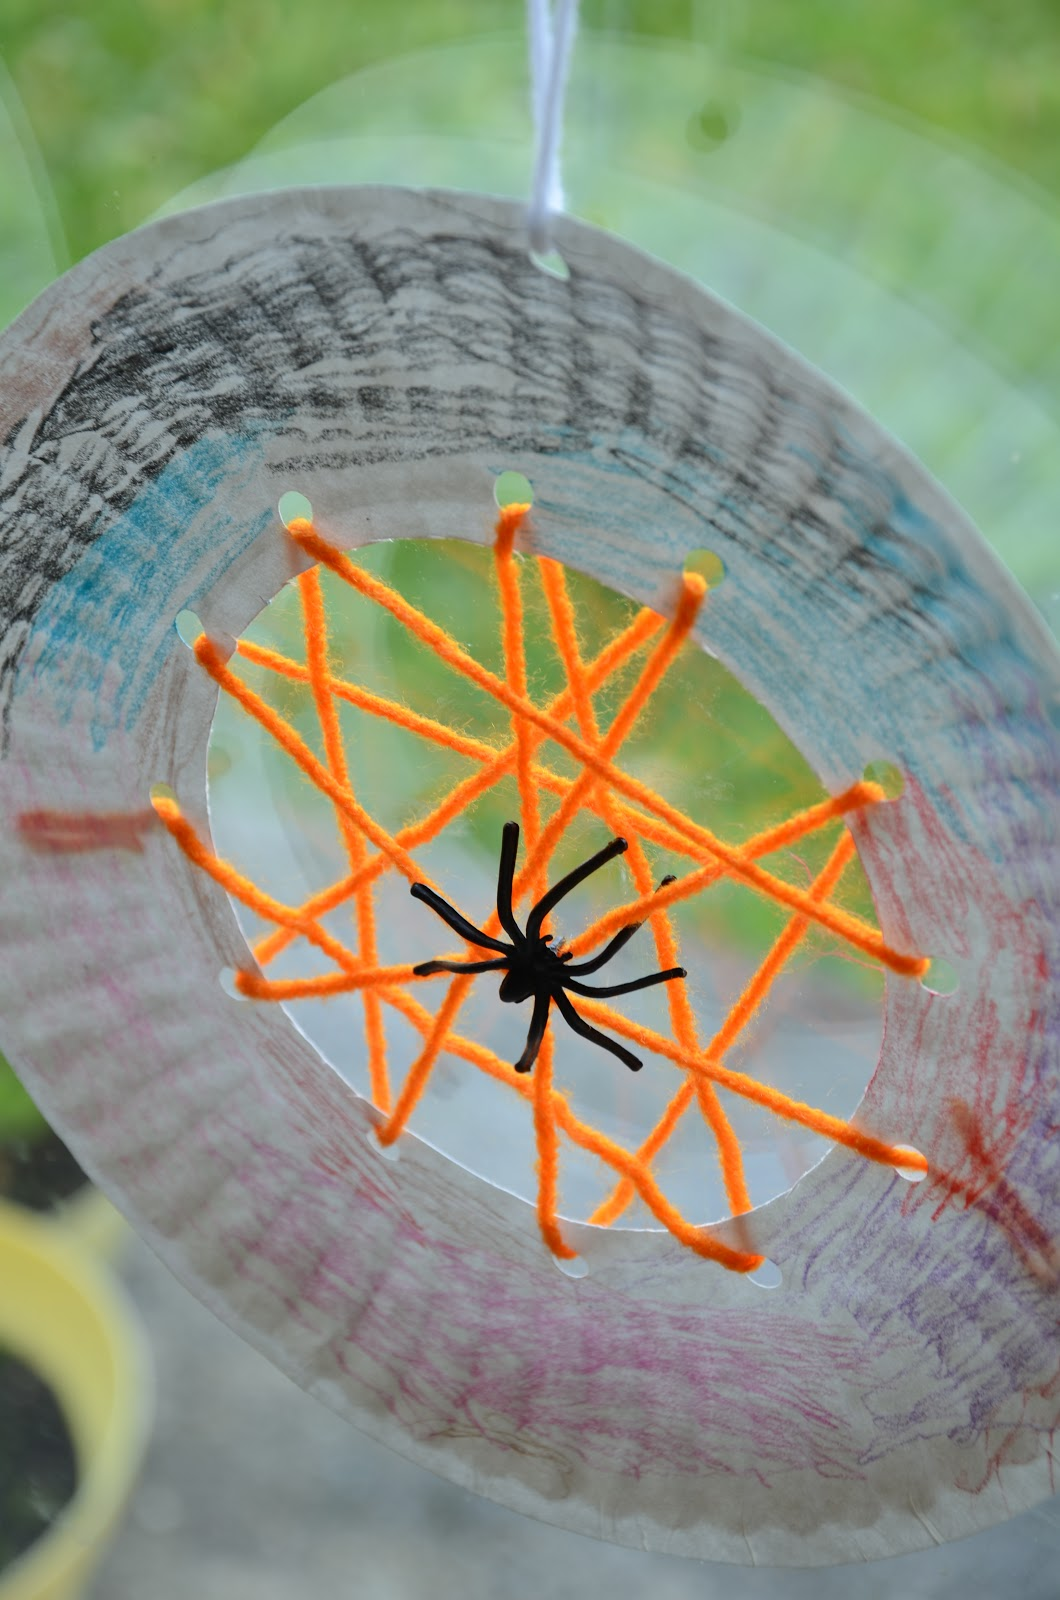 Paper Plate Spider Web Activity